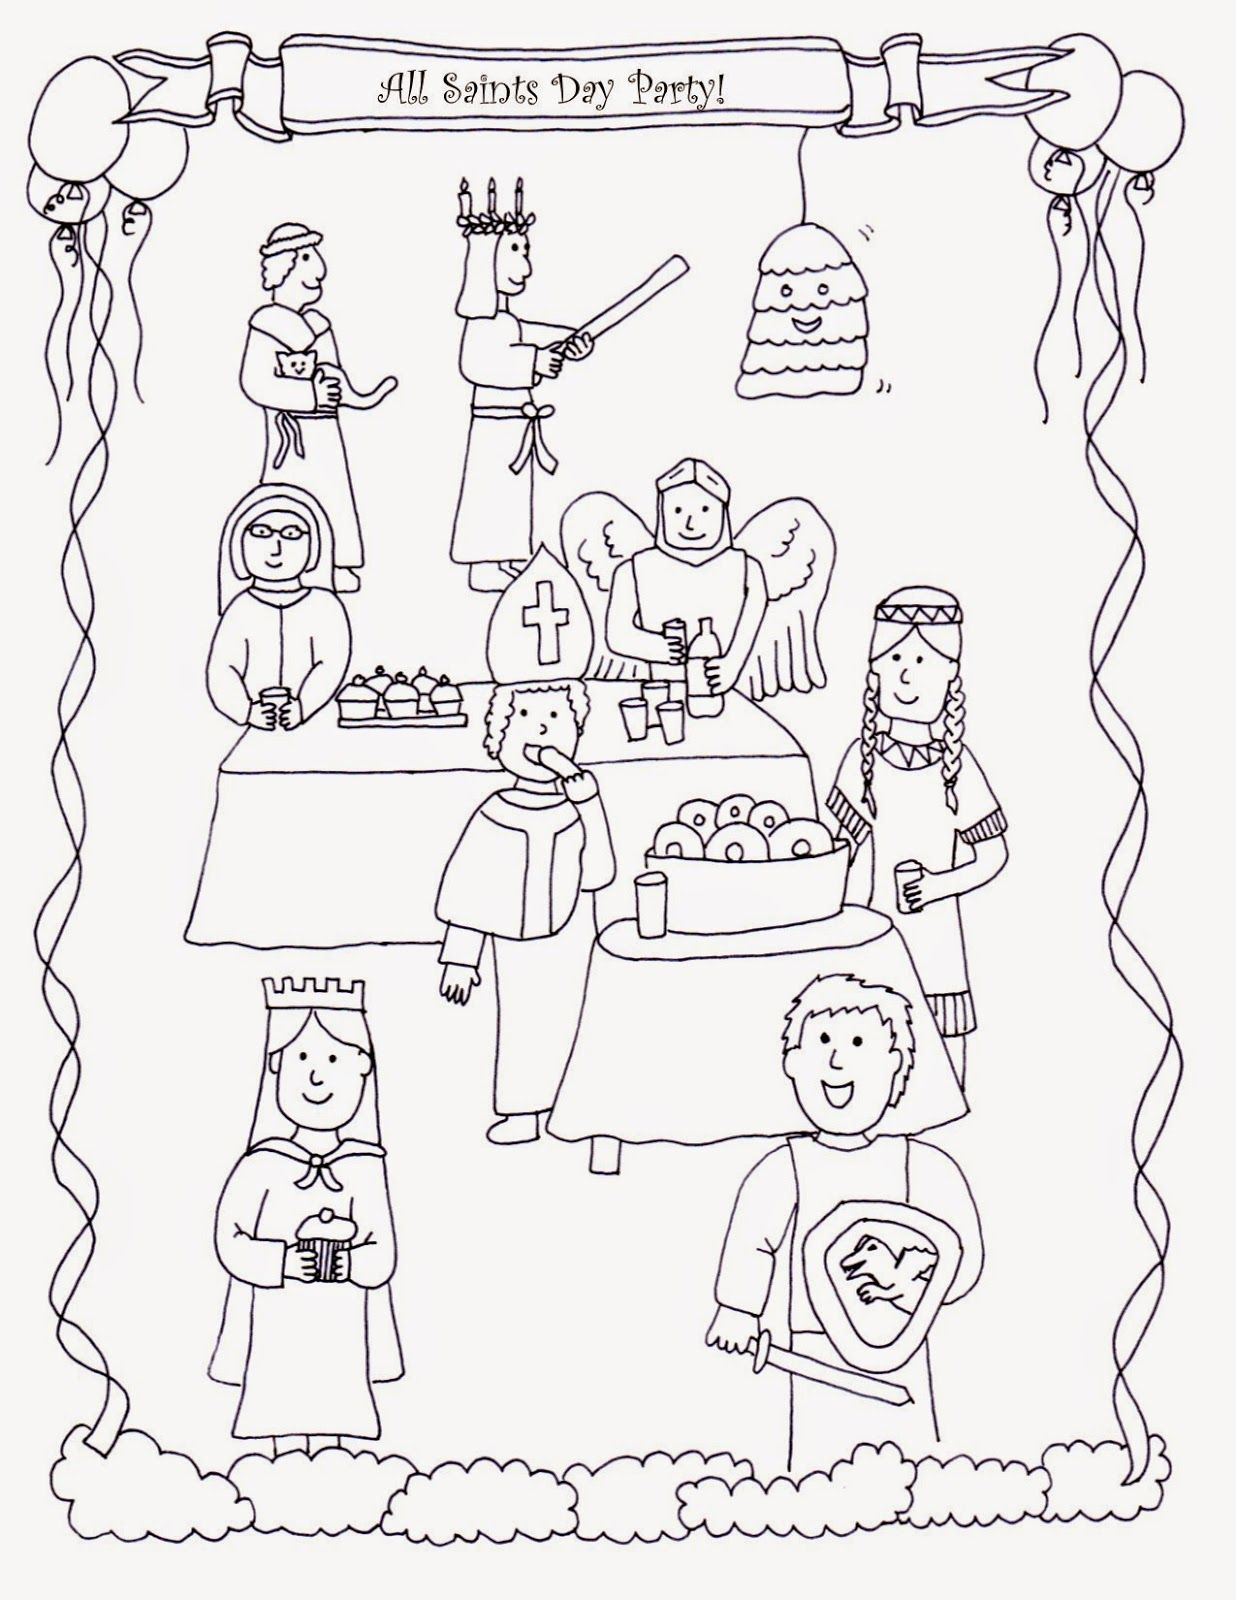 1236x1600 All Saints Day Coloring Pages